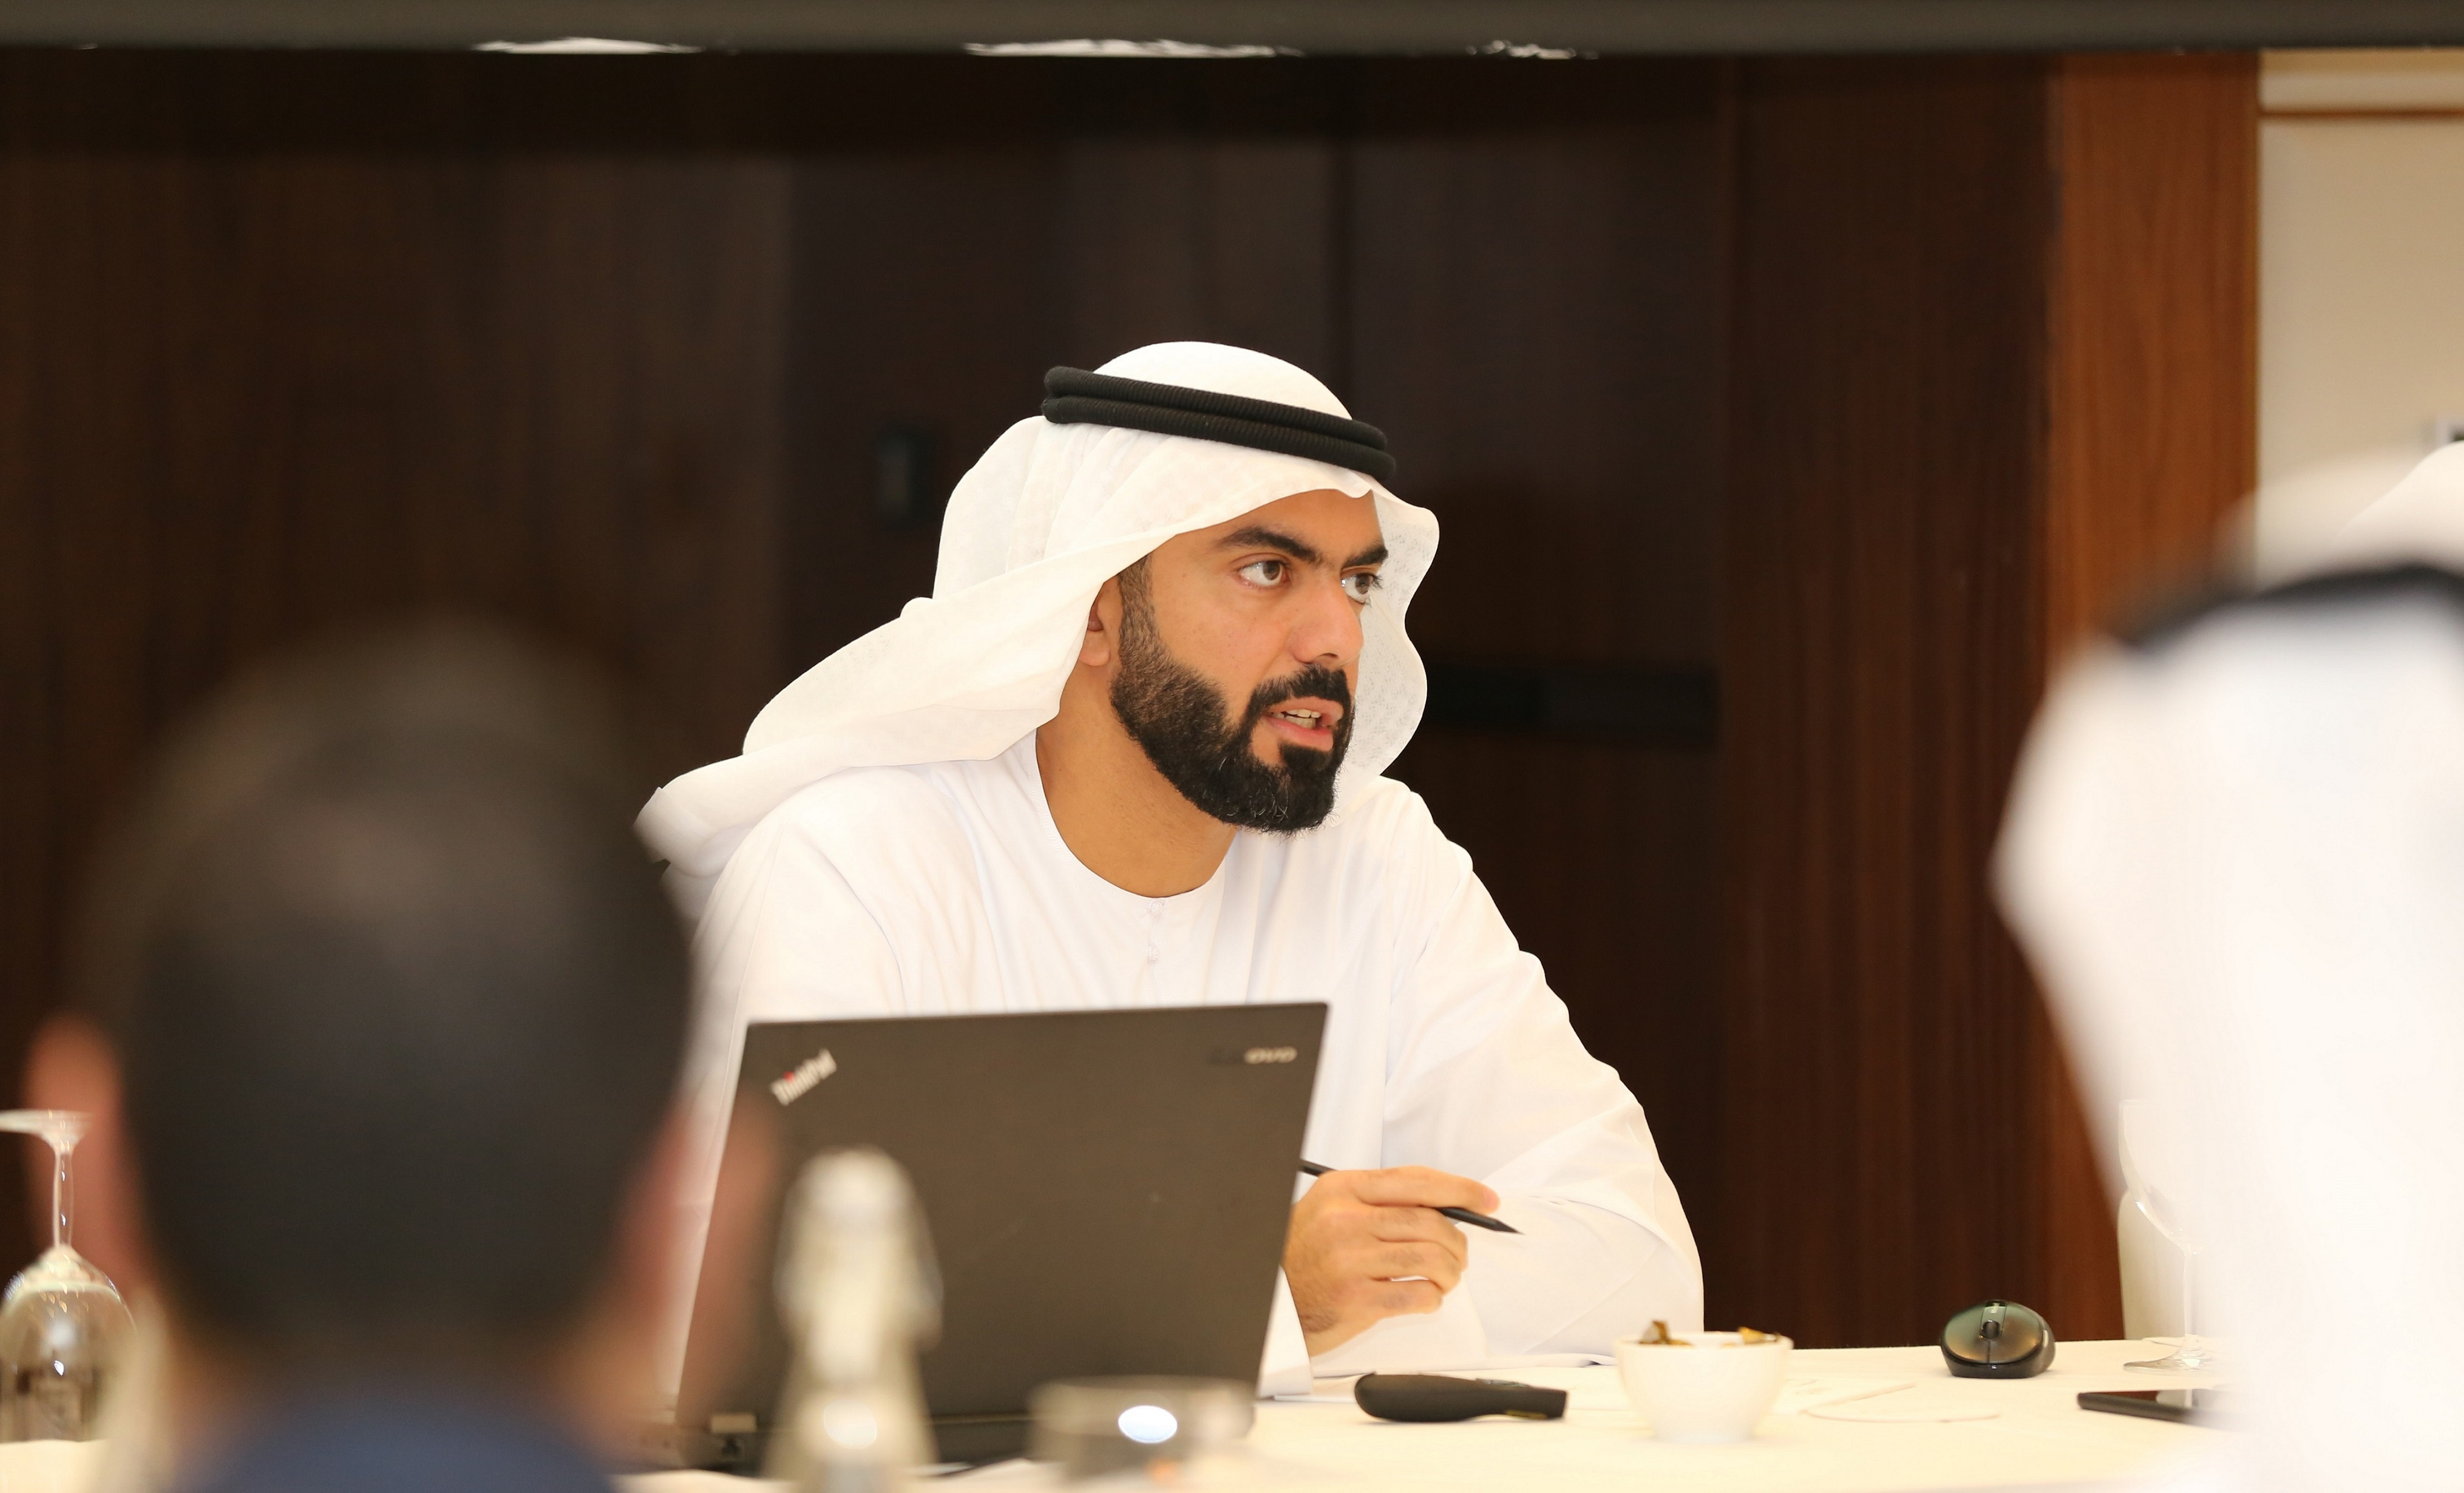 dct abu dhabi announces initiatives to drive tourism, sector investment 2